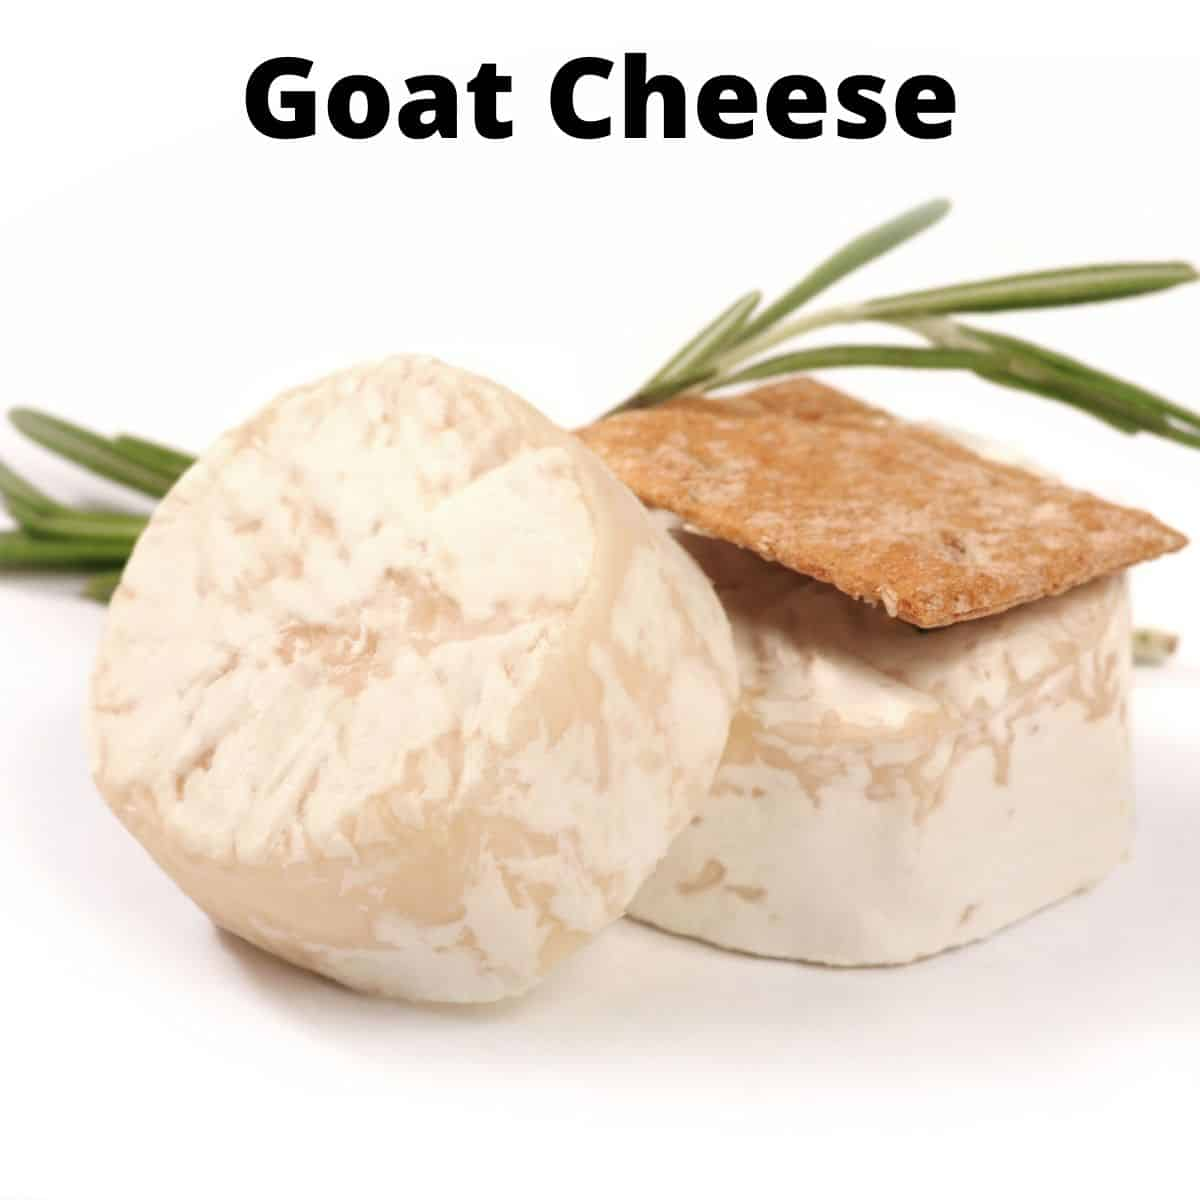 sliced goat cheese wheels with wheat cracker on top